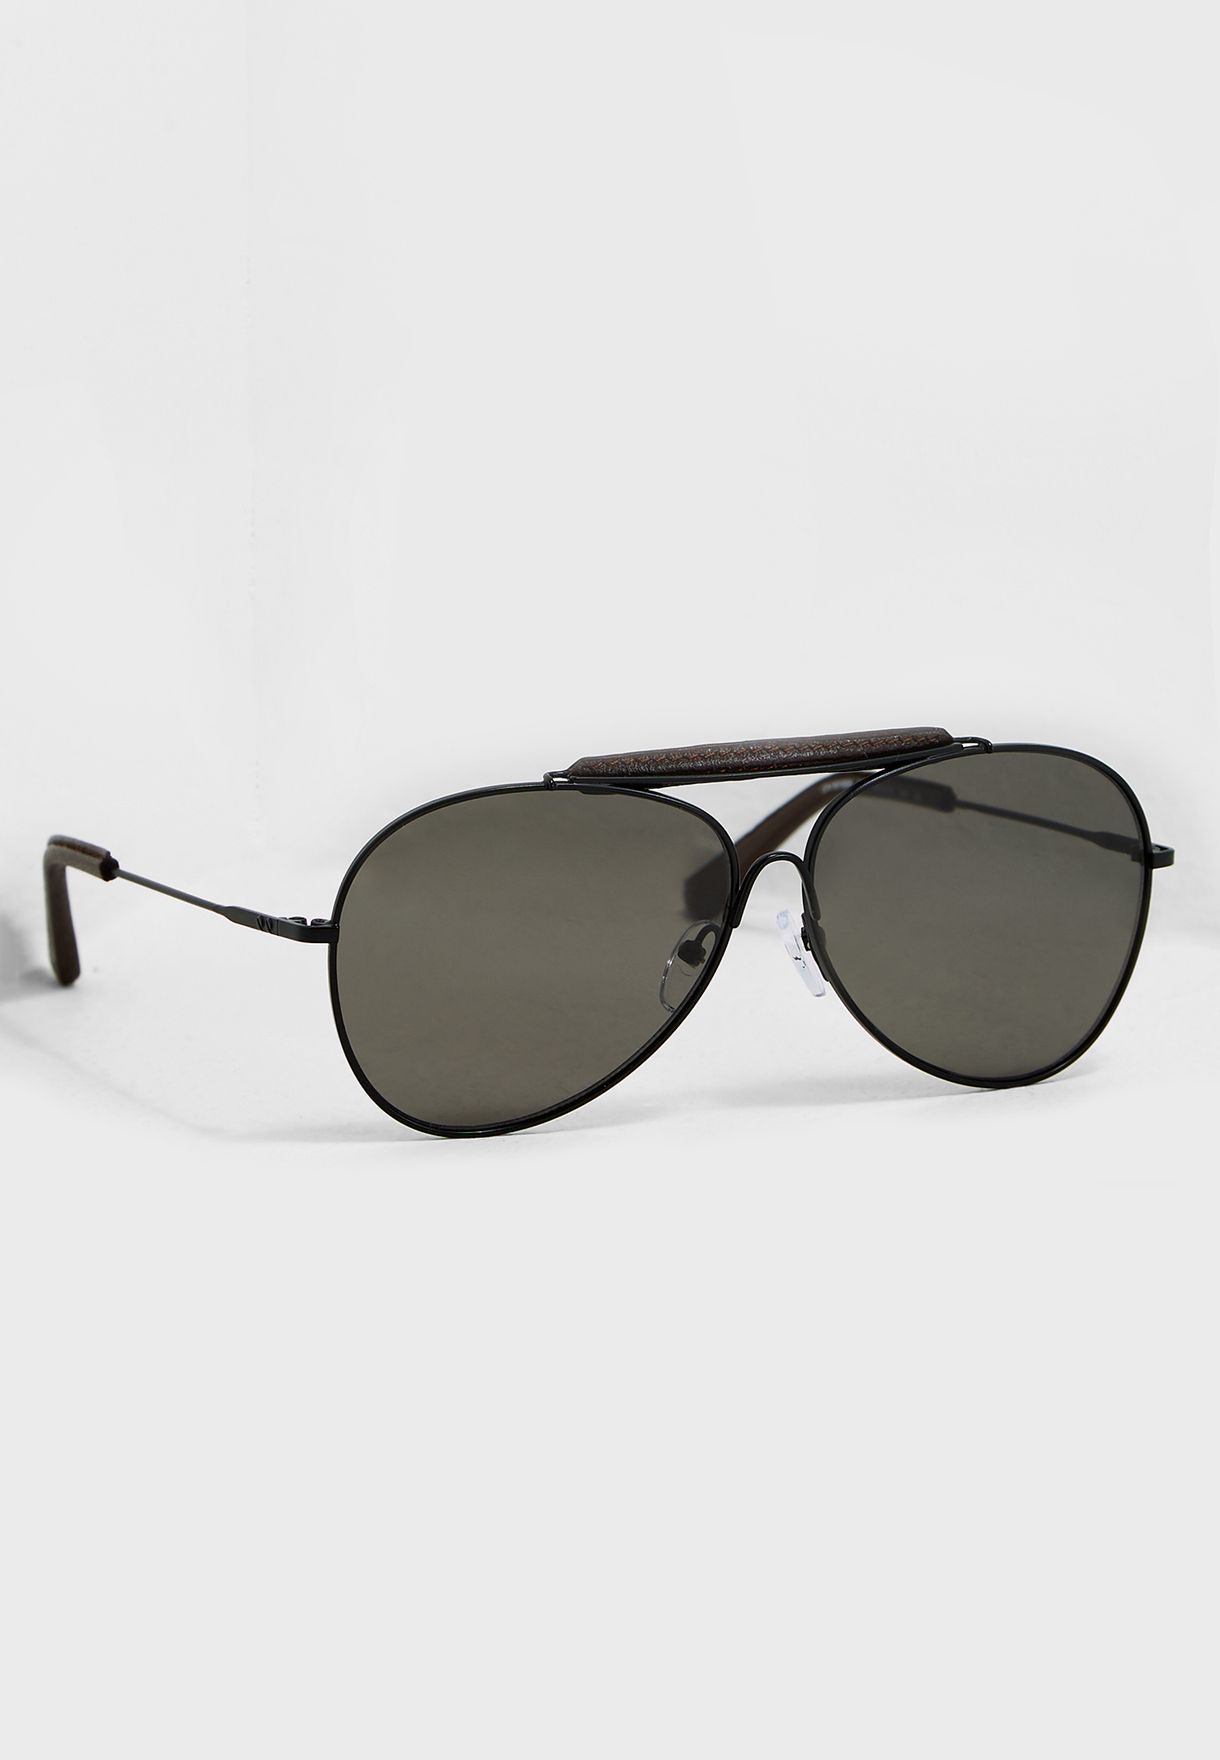 649b9efce9c0 Shop Calvin Klein black Aviator Sunglasses CK18100S-001 for Men in ...